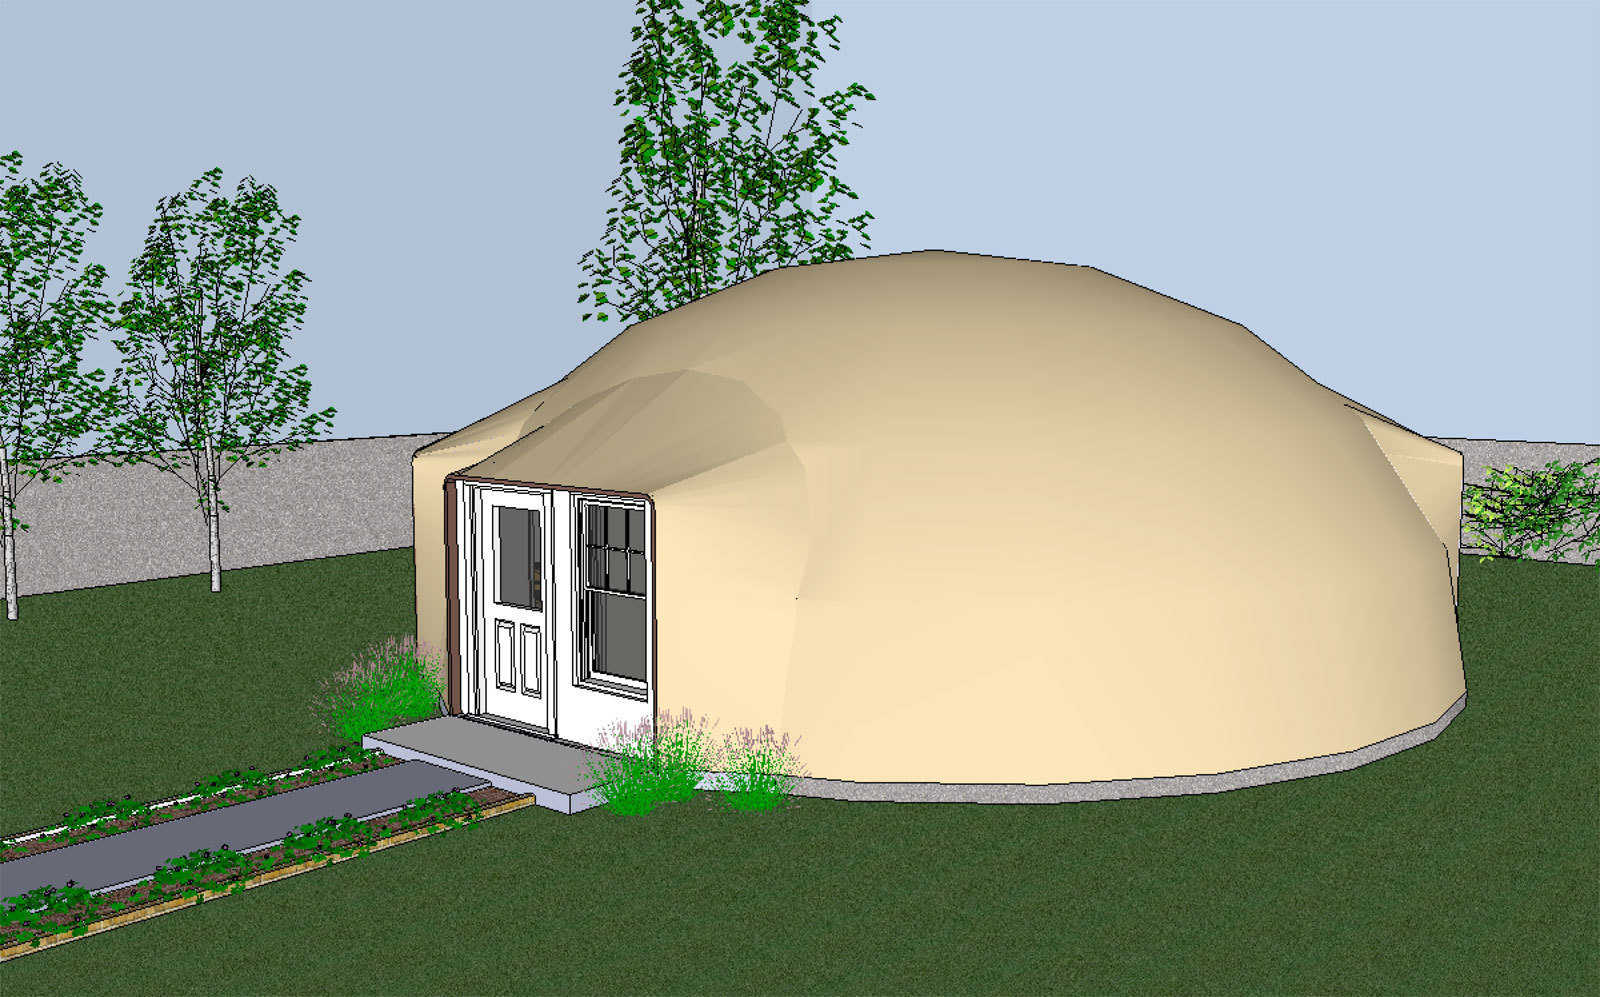 ariel Dome Home Plans Free on diy dome plans free, dome house plans and kits, townhouse plans free, dome pizza oven plans, geodesic dome plans free, dome house in new mexico, dome greenhouse plans free, houseboat plans free, dome pvc projects,